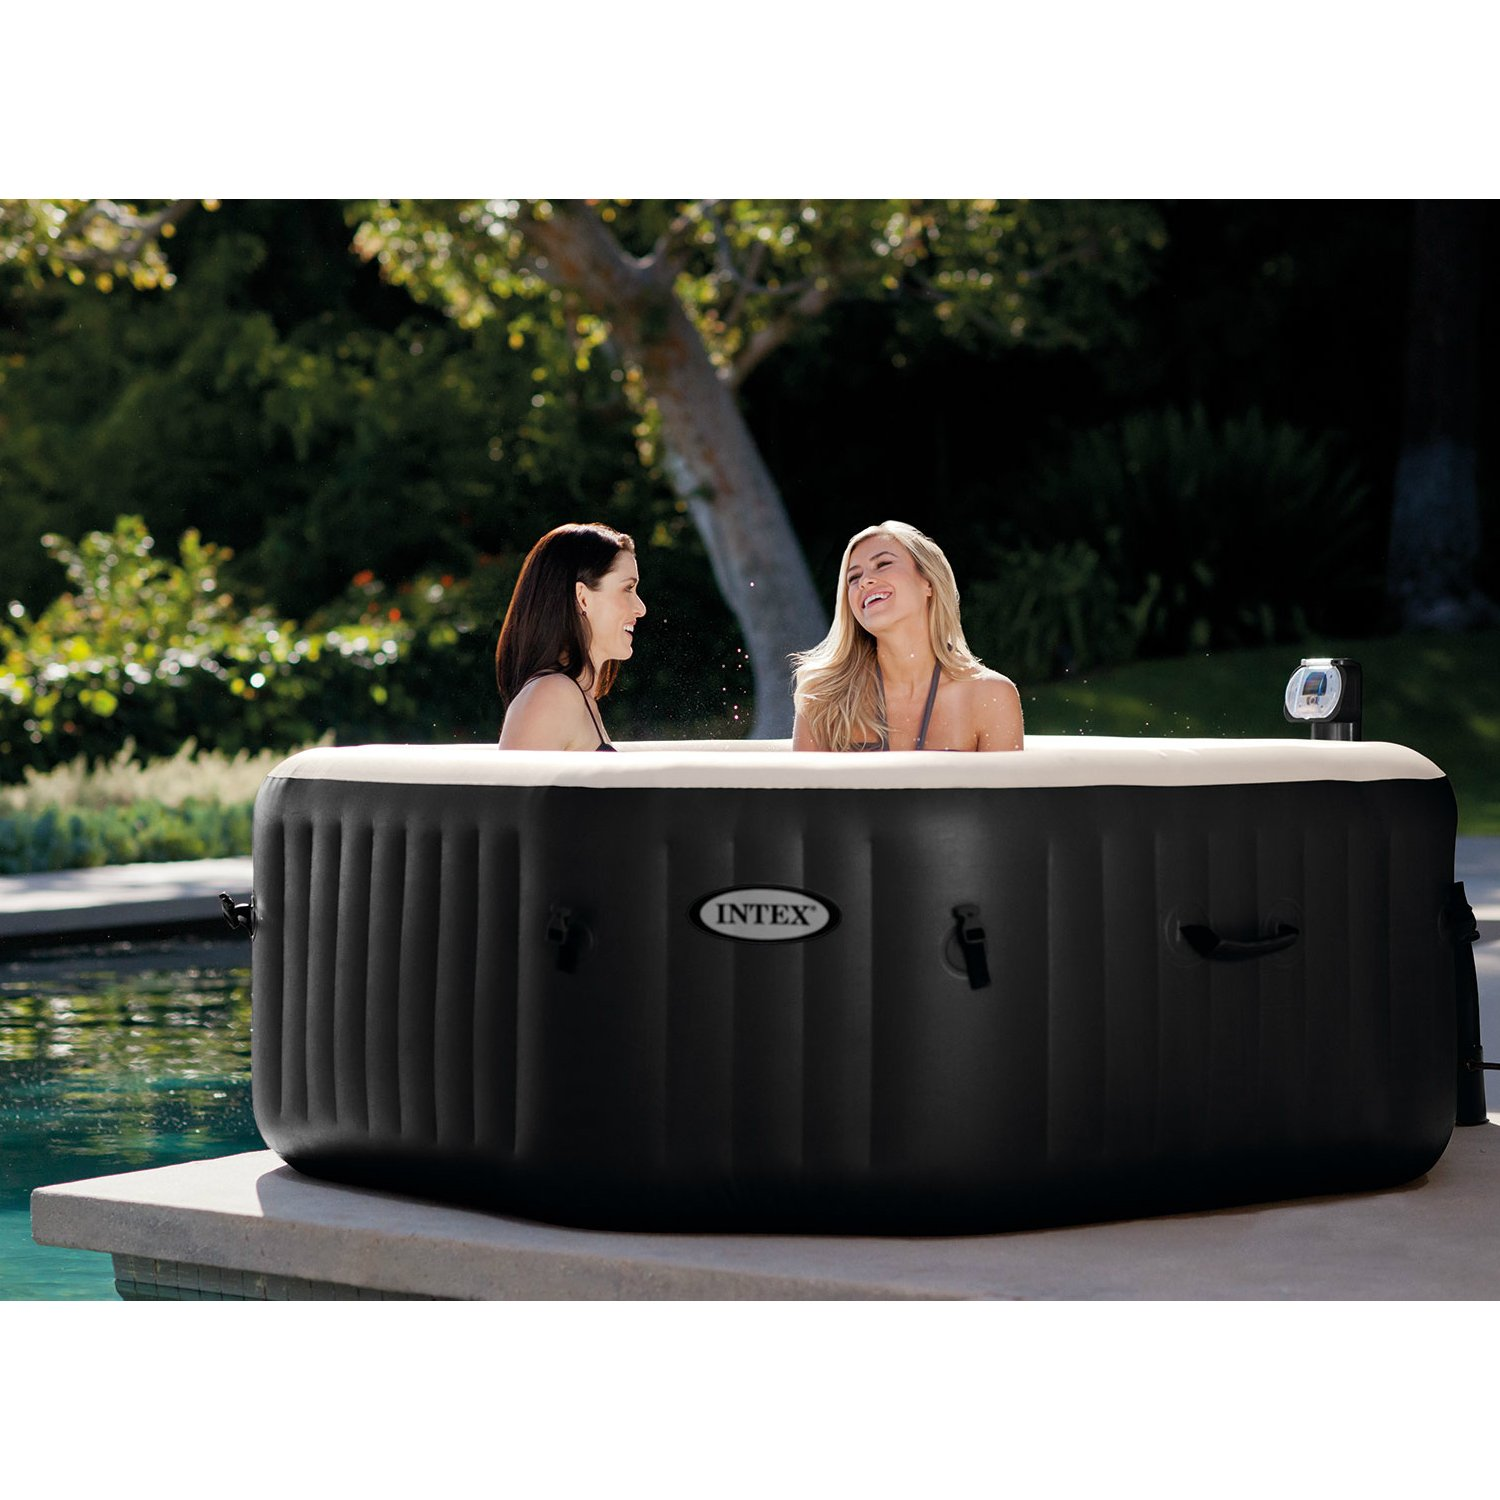 portable blue hot deluxe and aqua htm inflatable spa by toys water tub products person